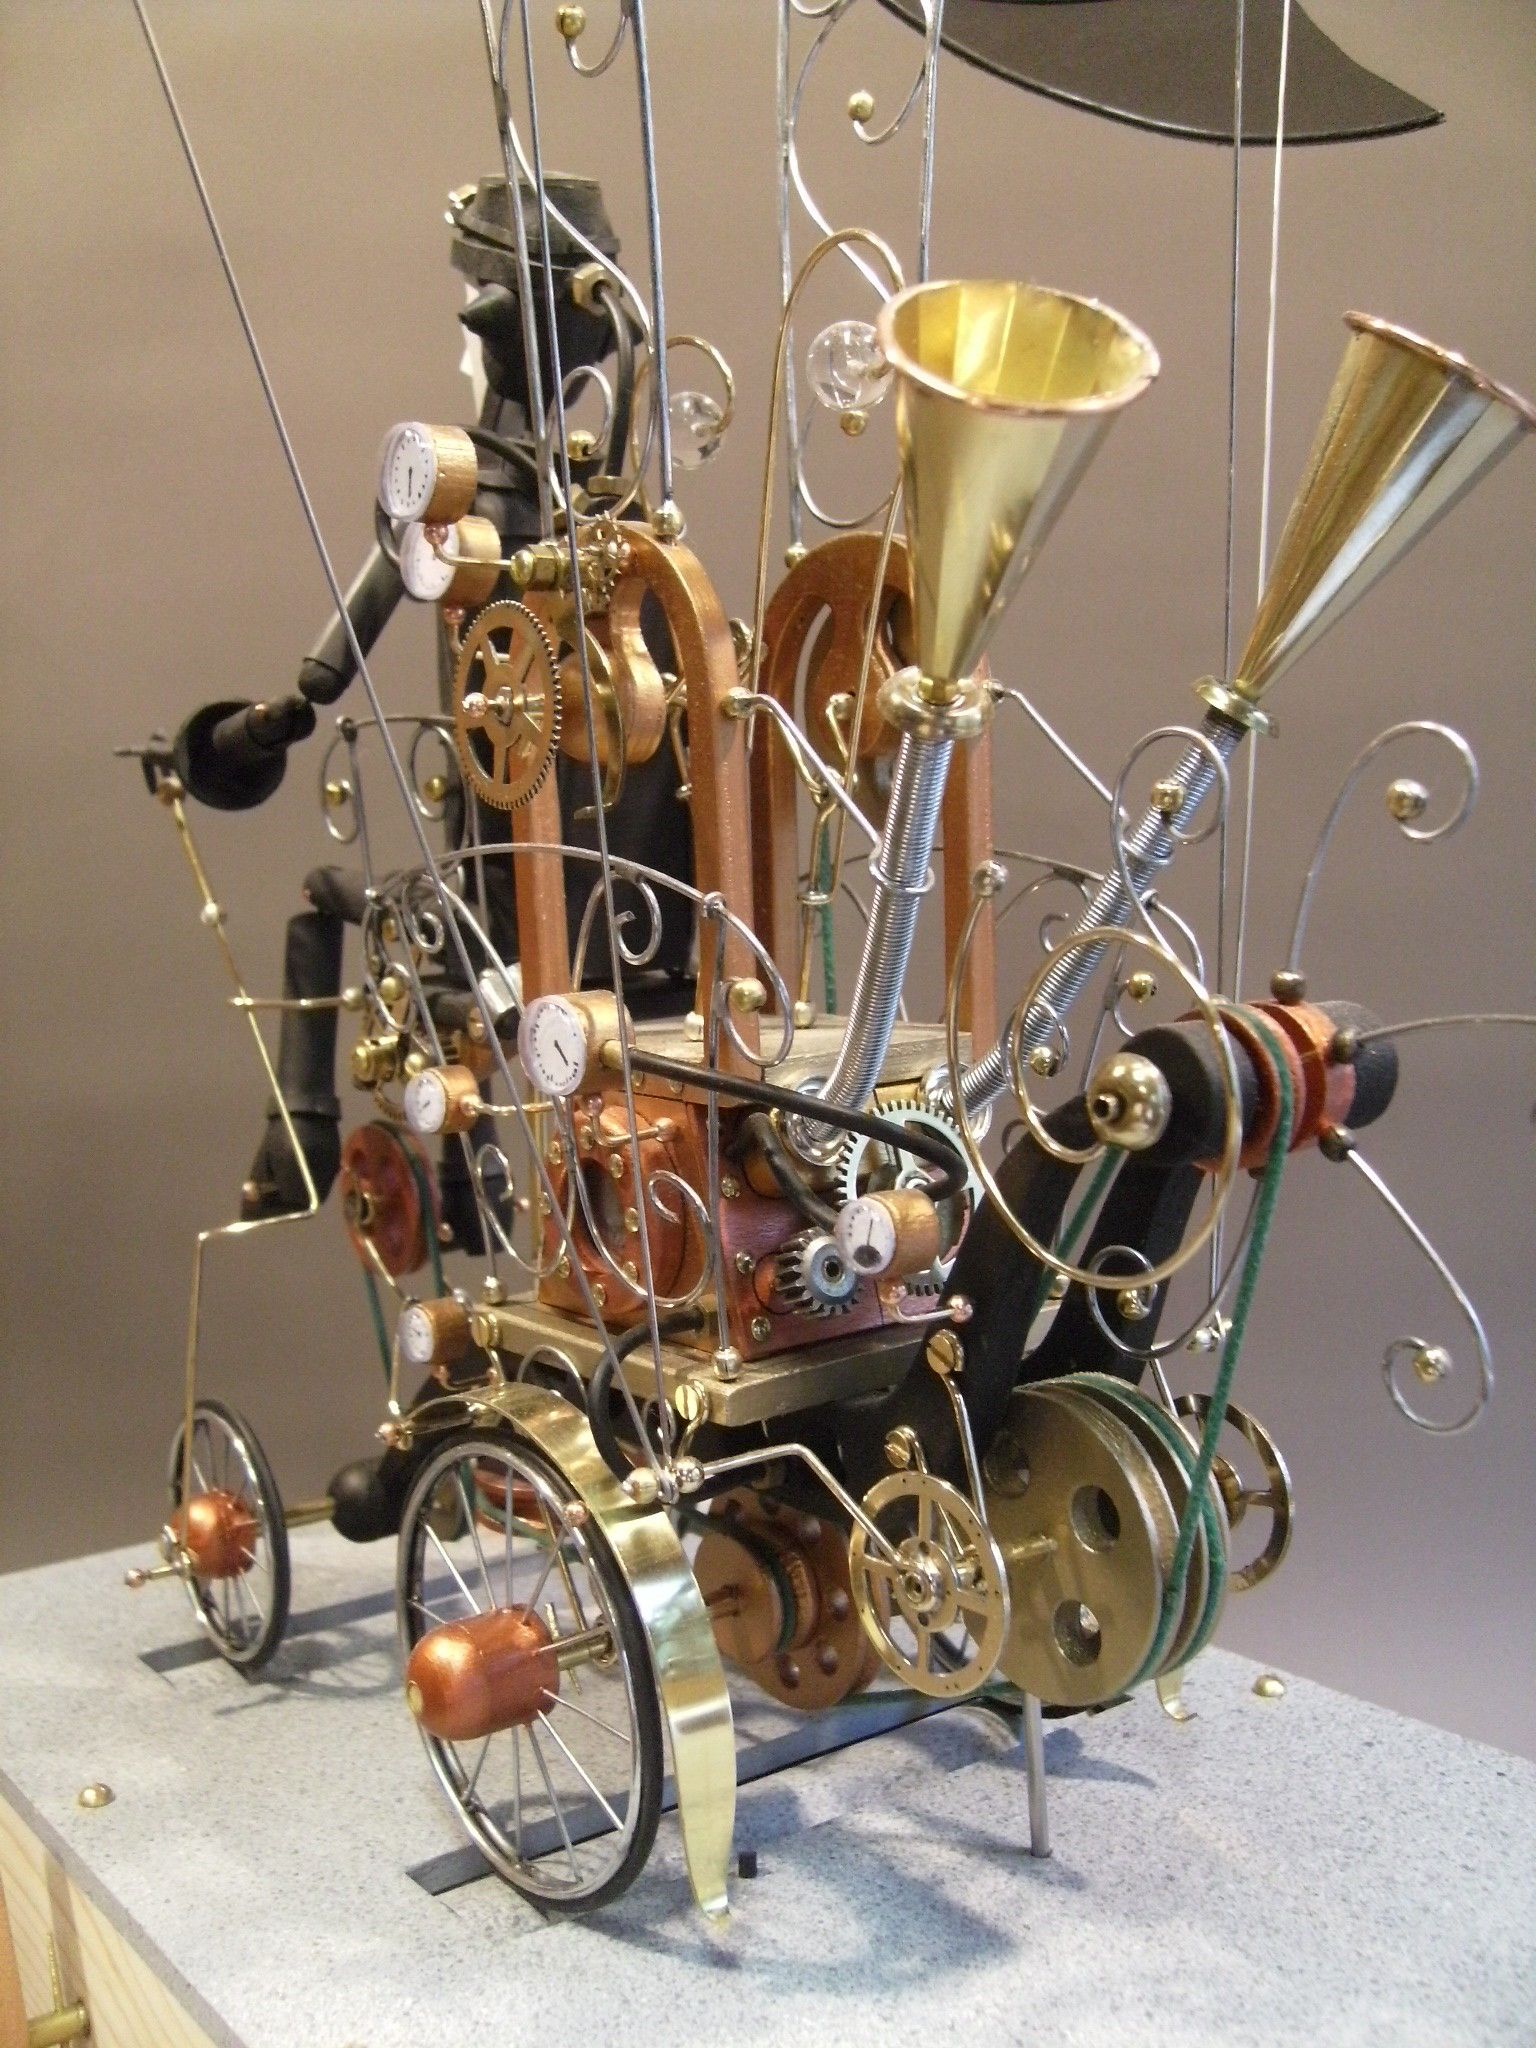 Creative Automata Design By Keith Newstead  Sable & Ox